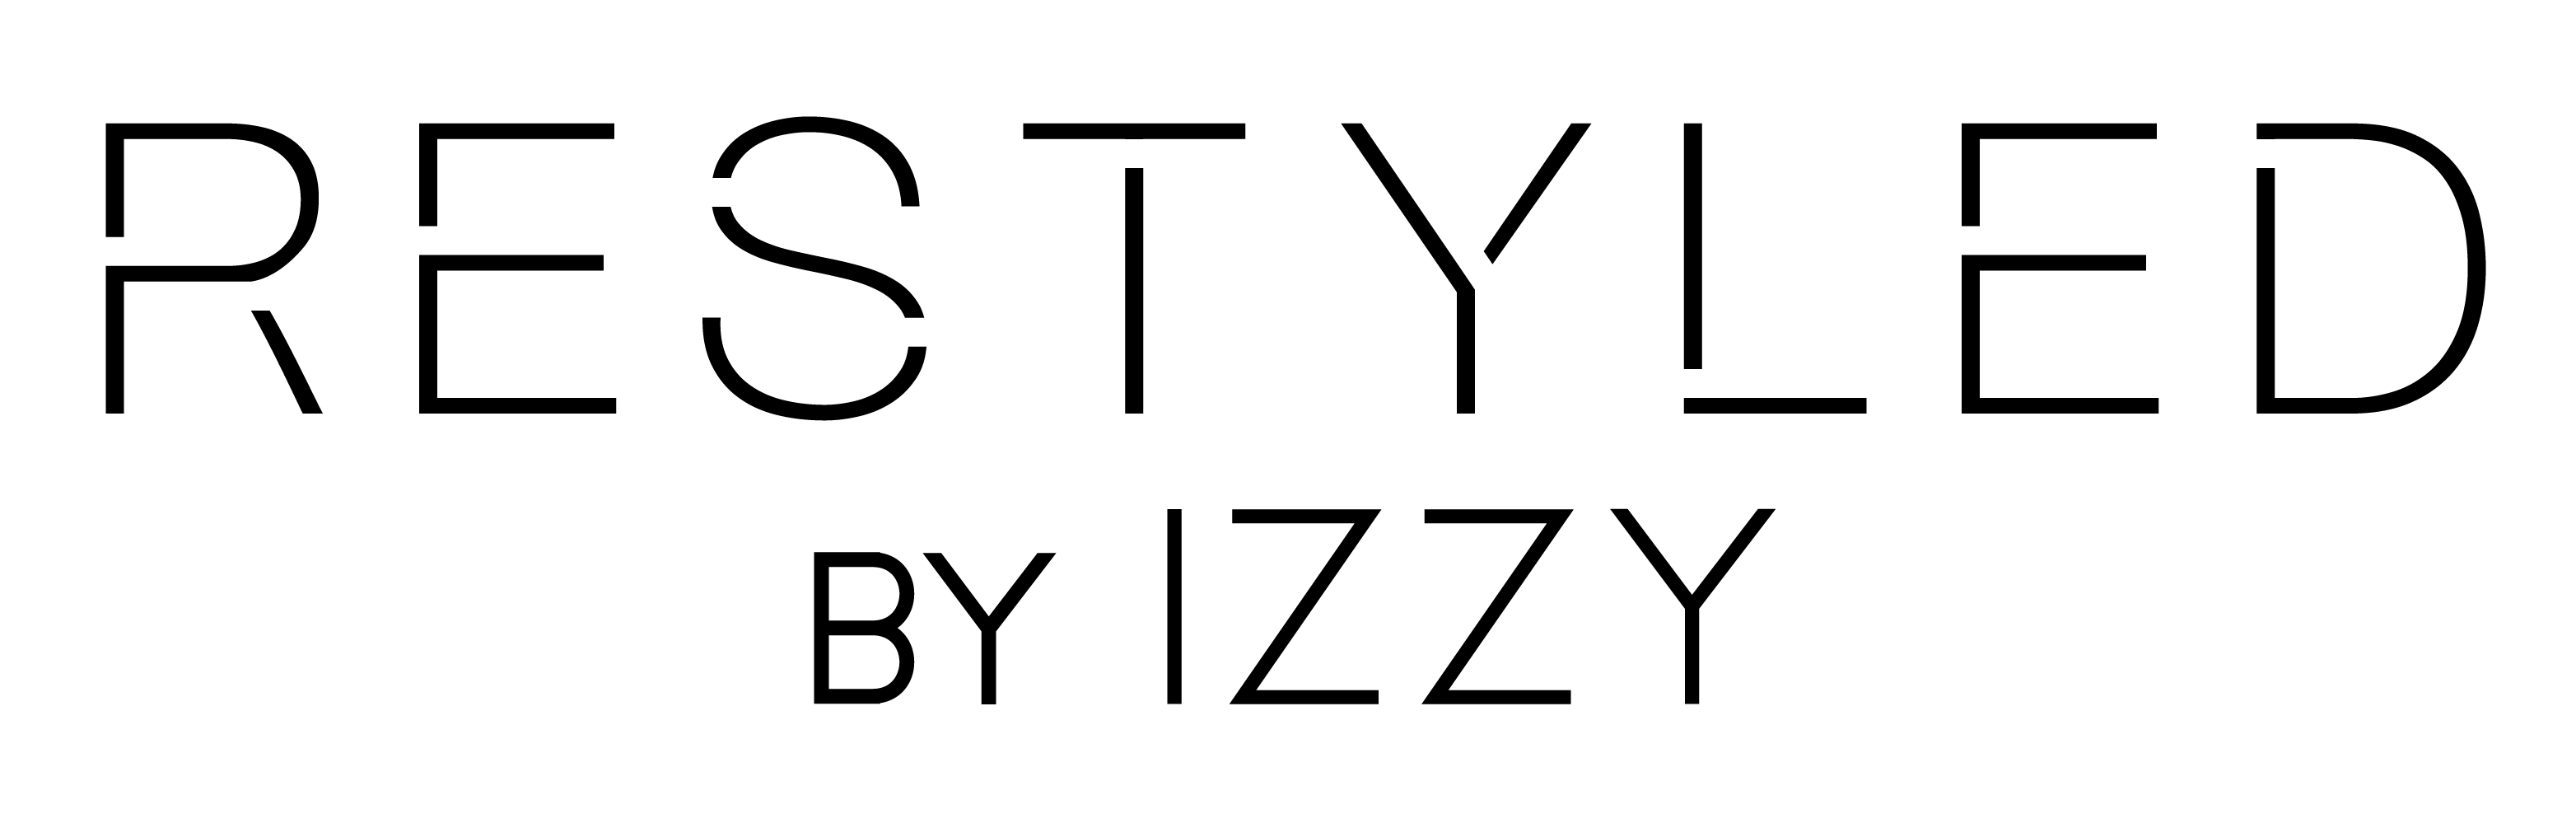 Behind The Curtain: Restyled by Izzy, Disrupting Fashion